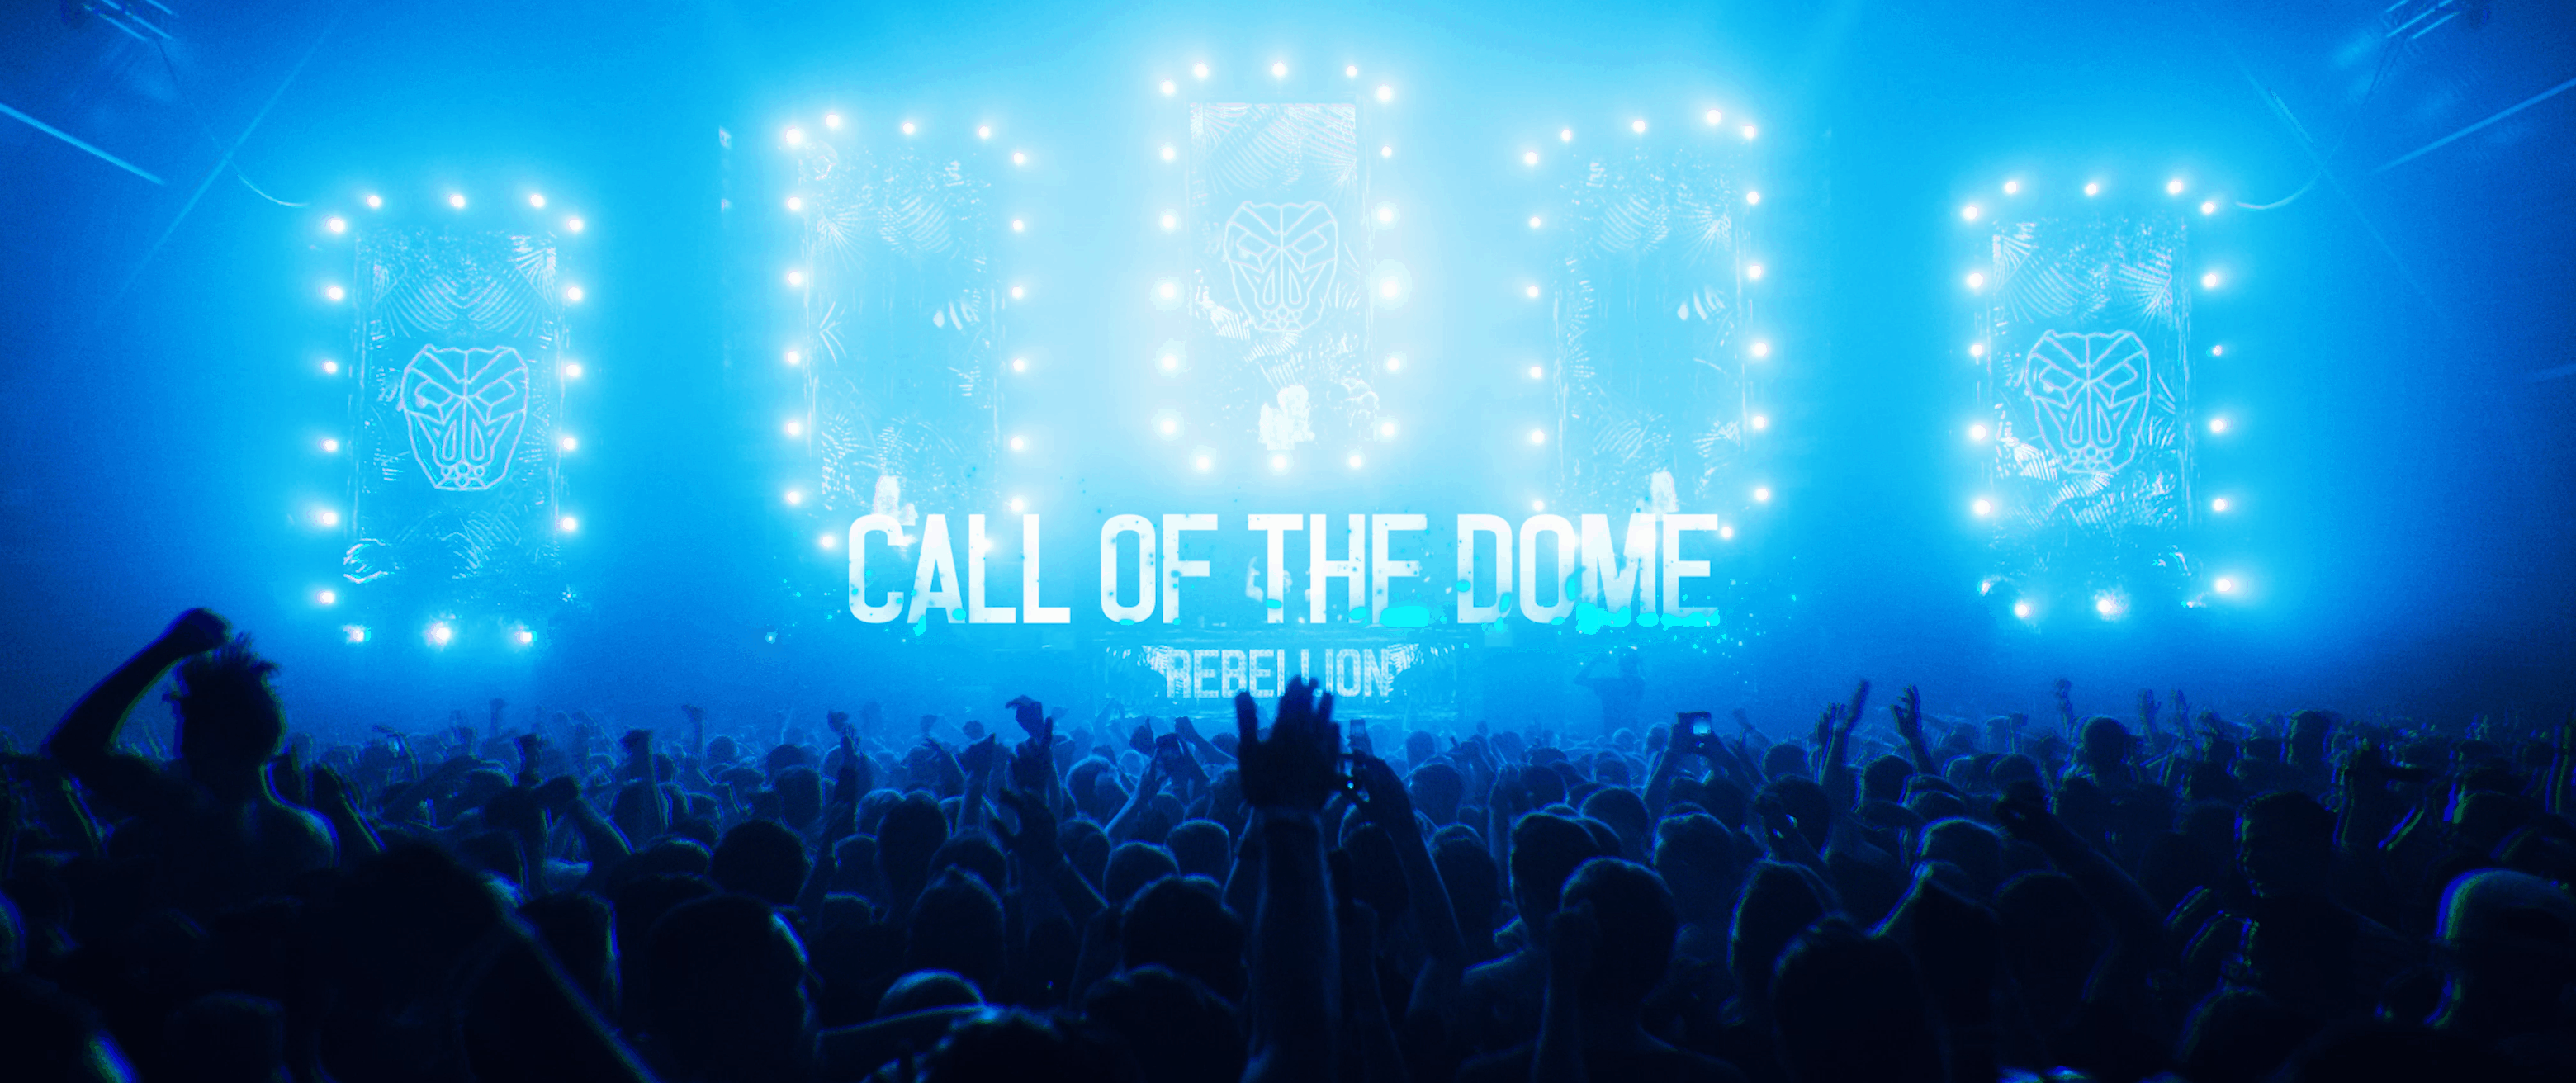 REBELLiON Call Of The Dome Aftermovie